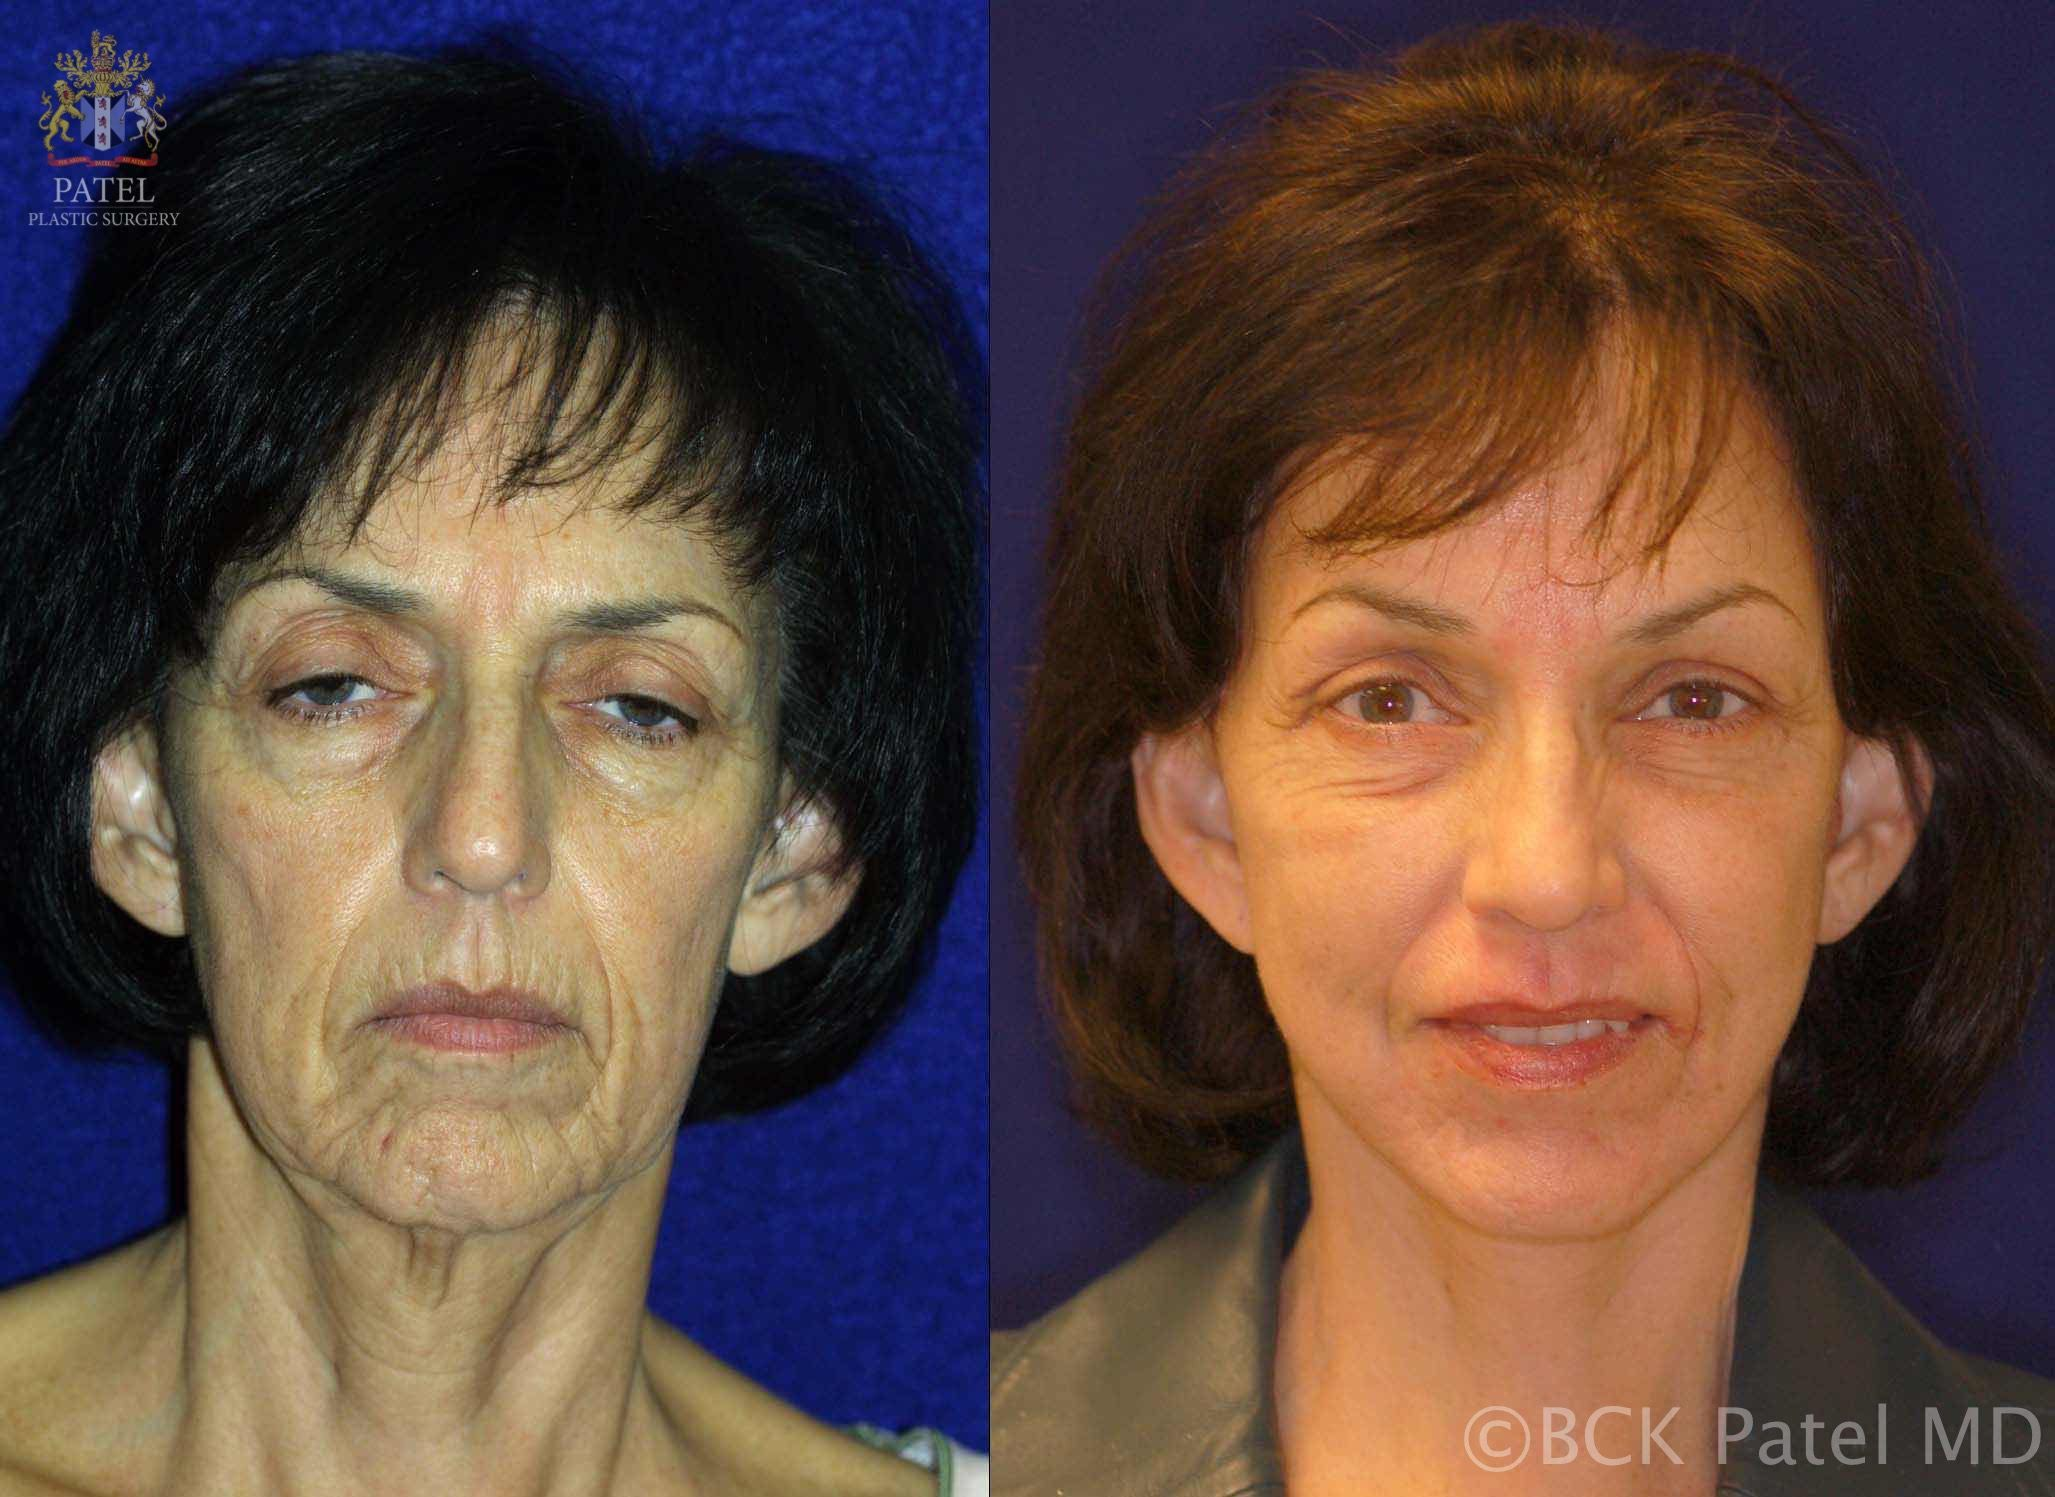 englishsurgeon.com. Photos show before-and-after results of browlifts and facelift